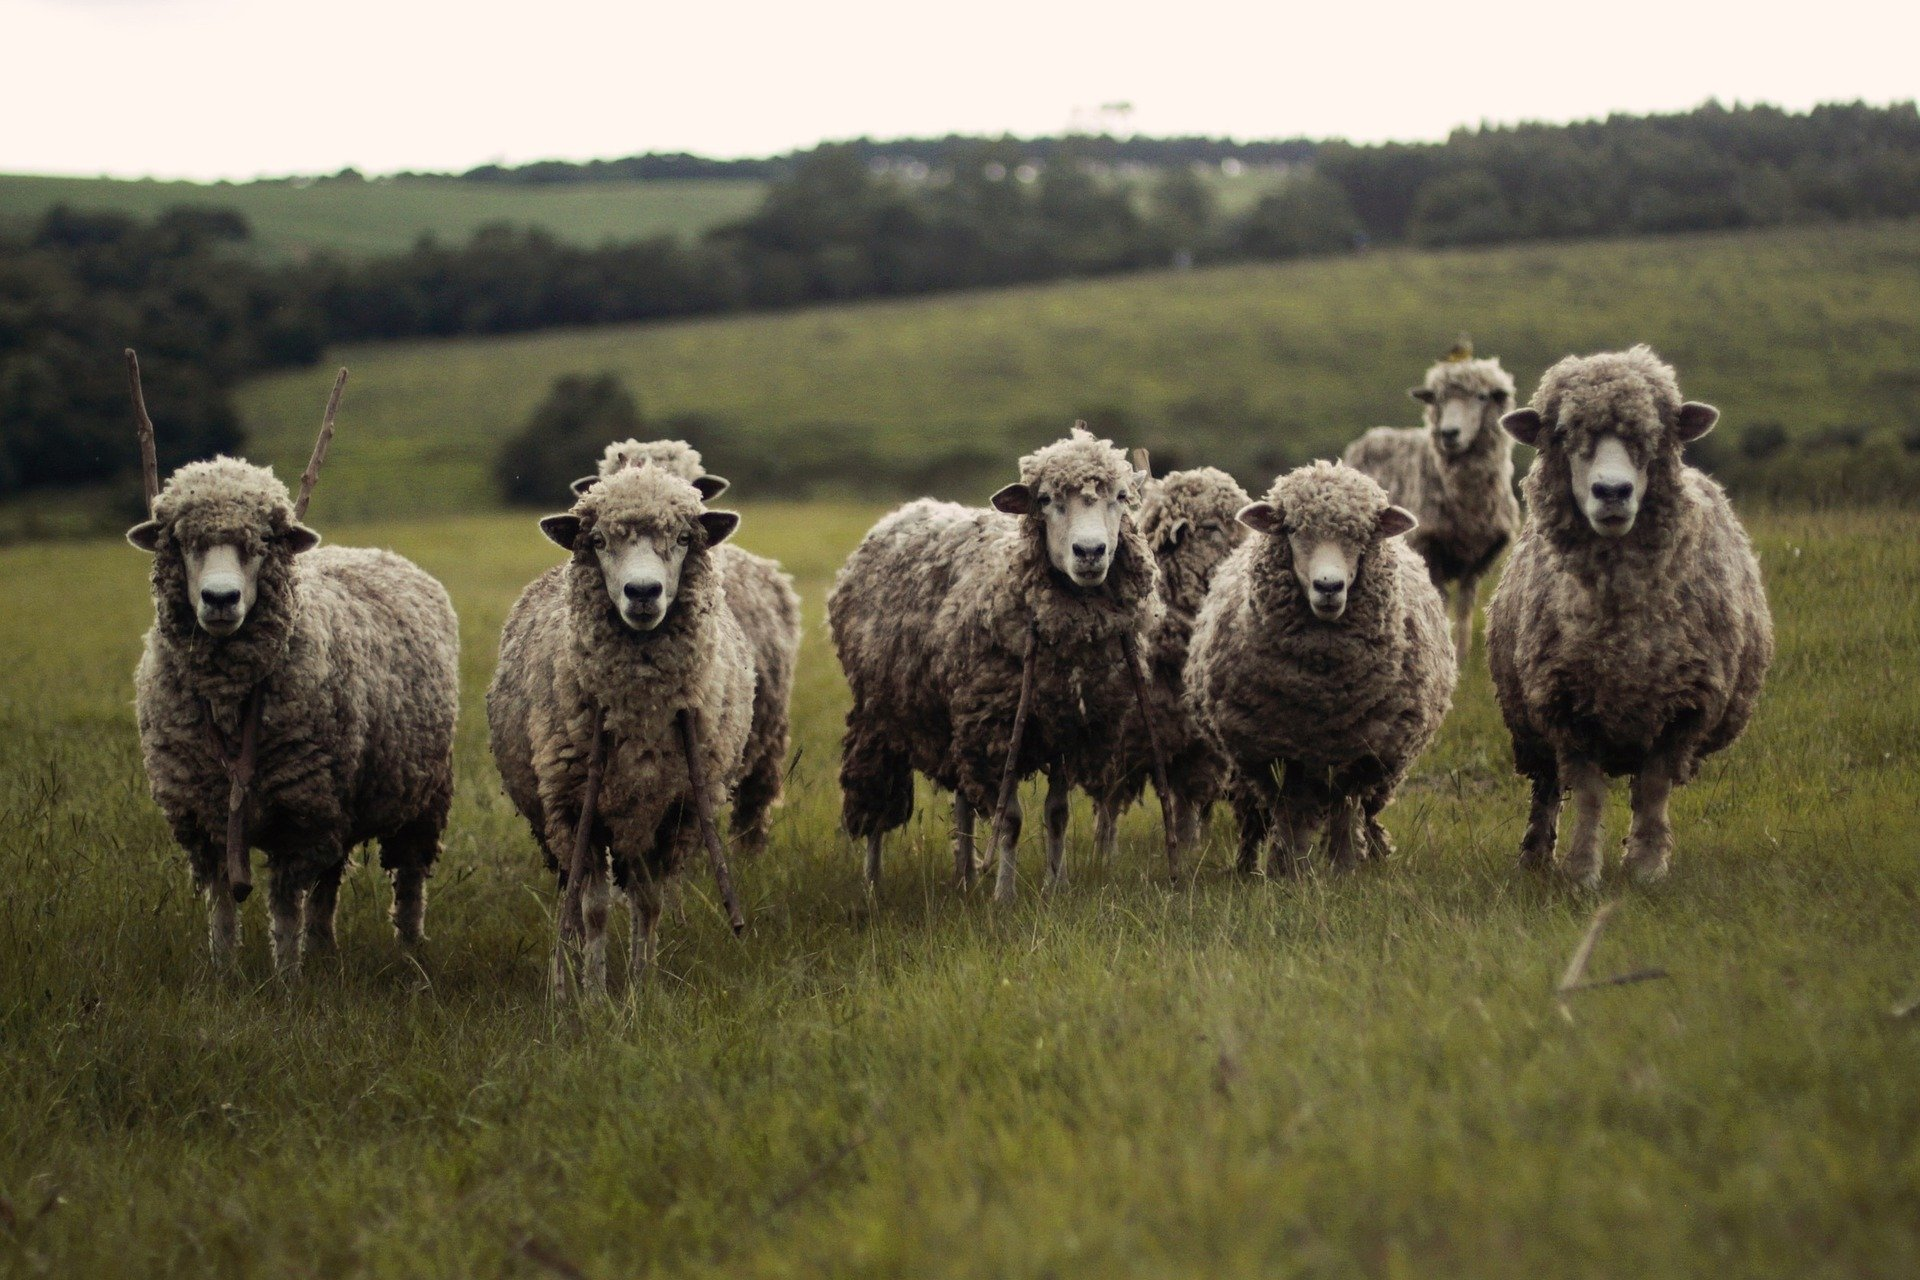 Sheep Standing in a Pasture - Farm Background Wallpaper Pictures